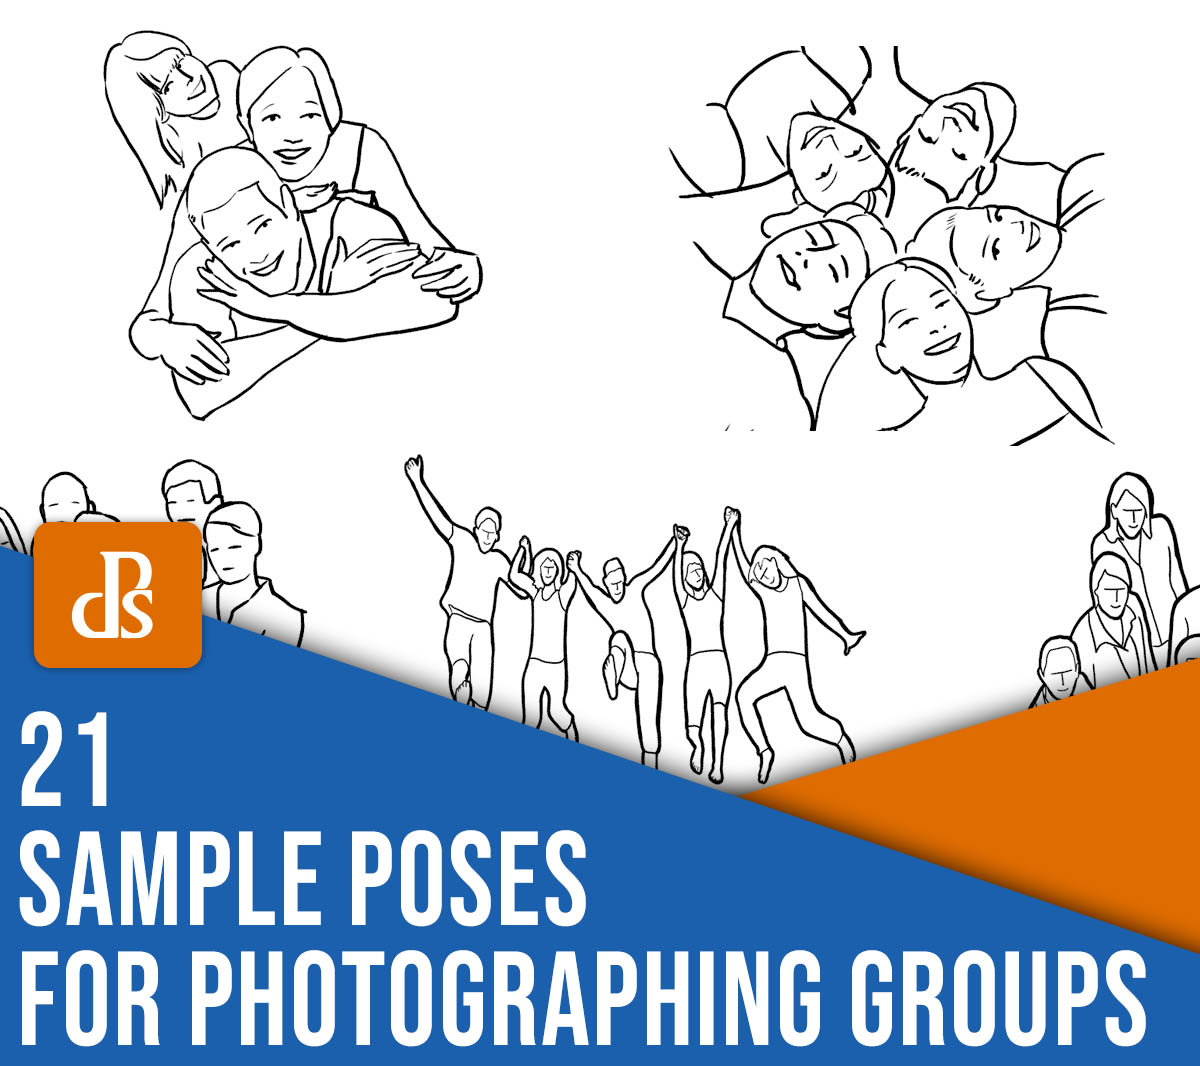 21 Sample Poses to Get You Started Photographing Groups of People